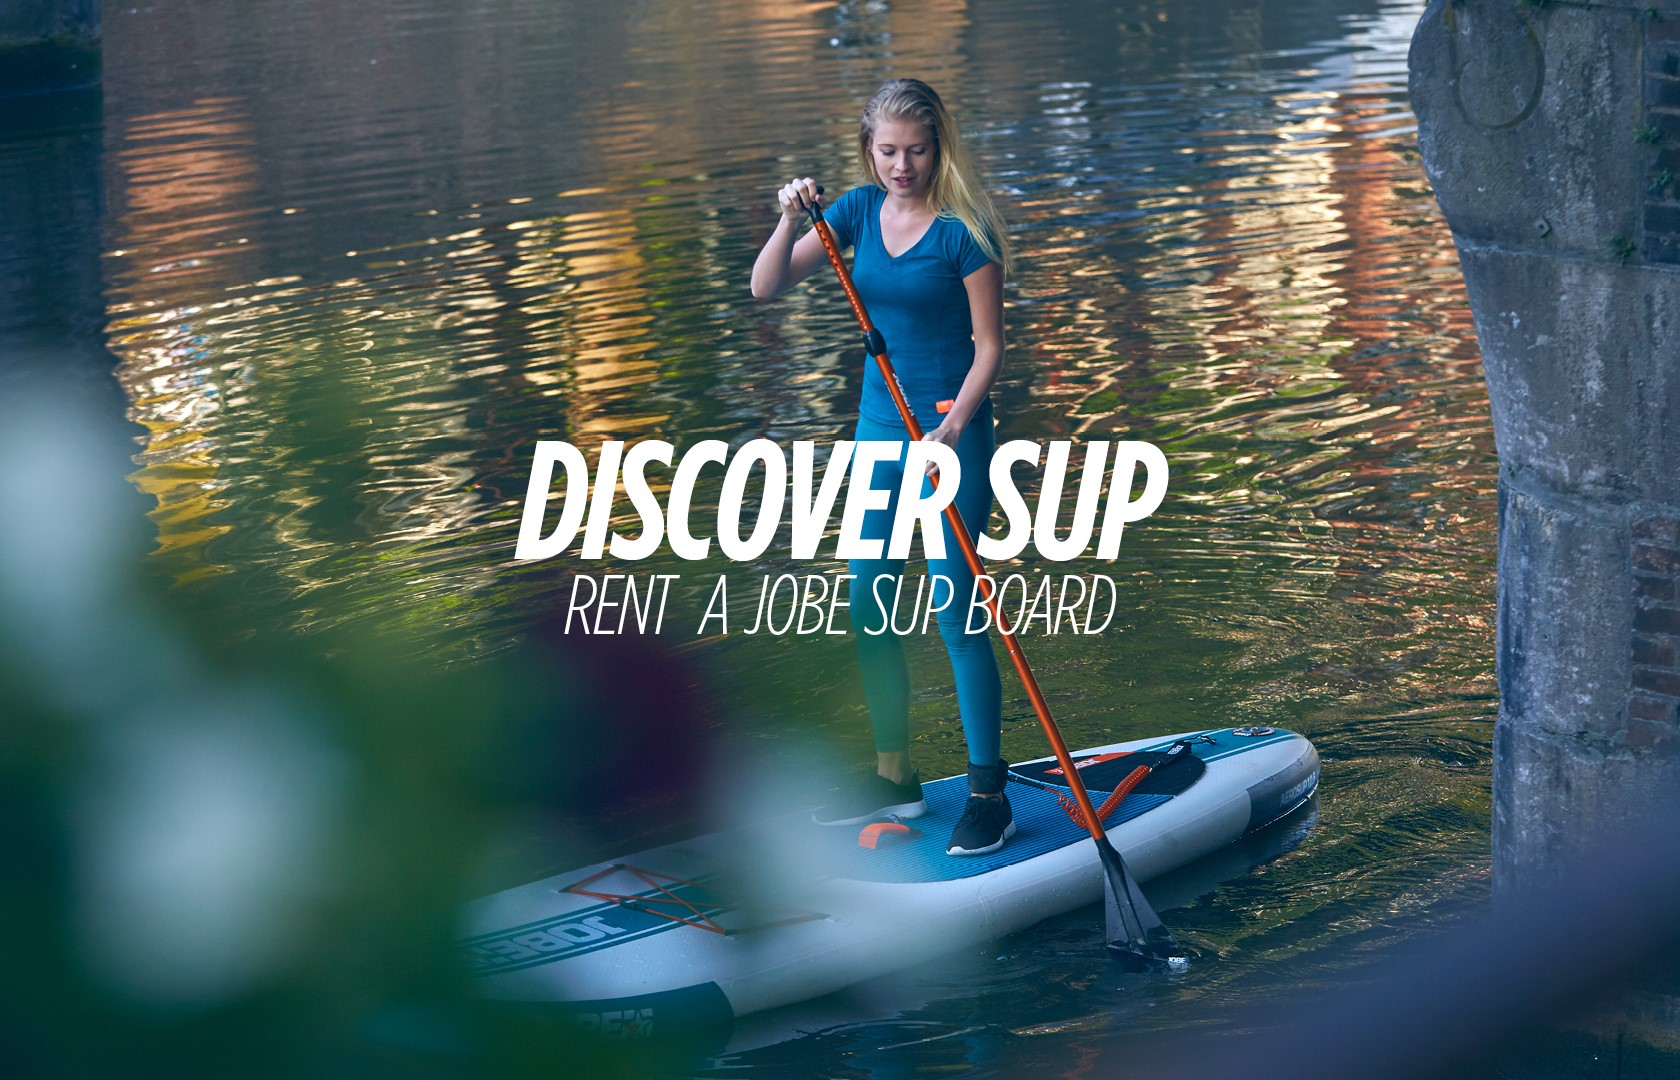 Jobe SUP introduces